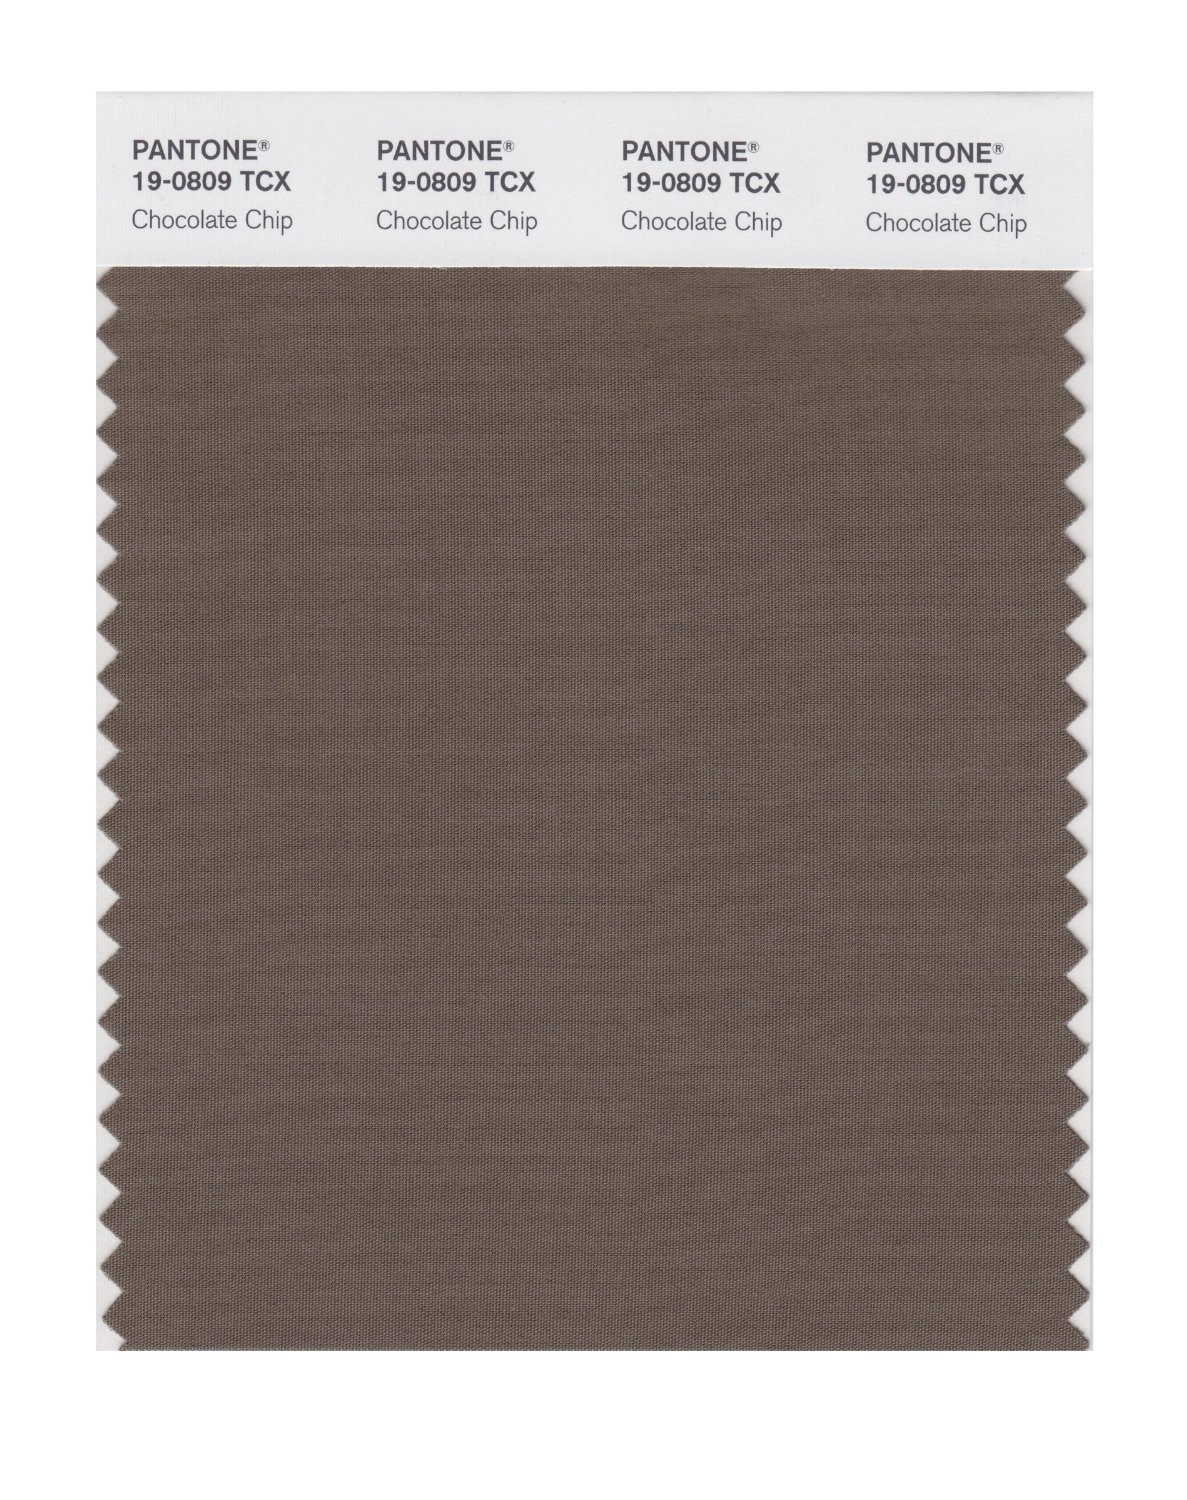 Pantone Smart Swatch 19-0809 Chocolate Chip